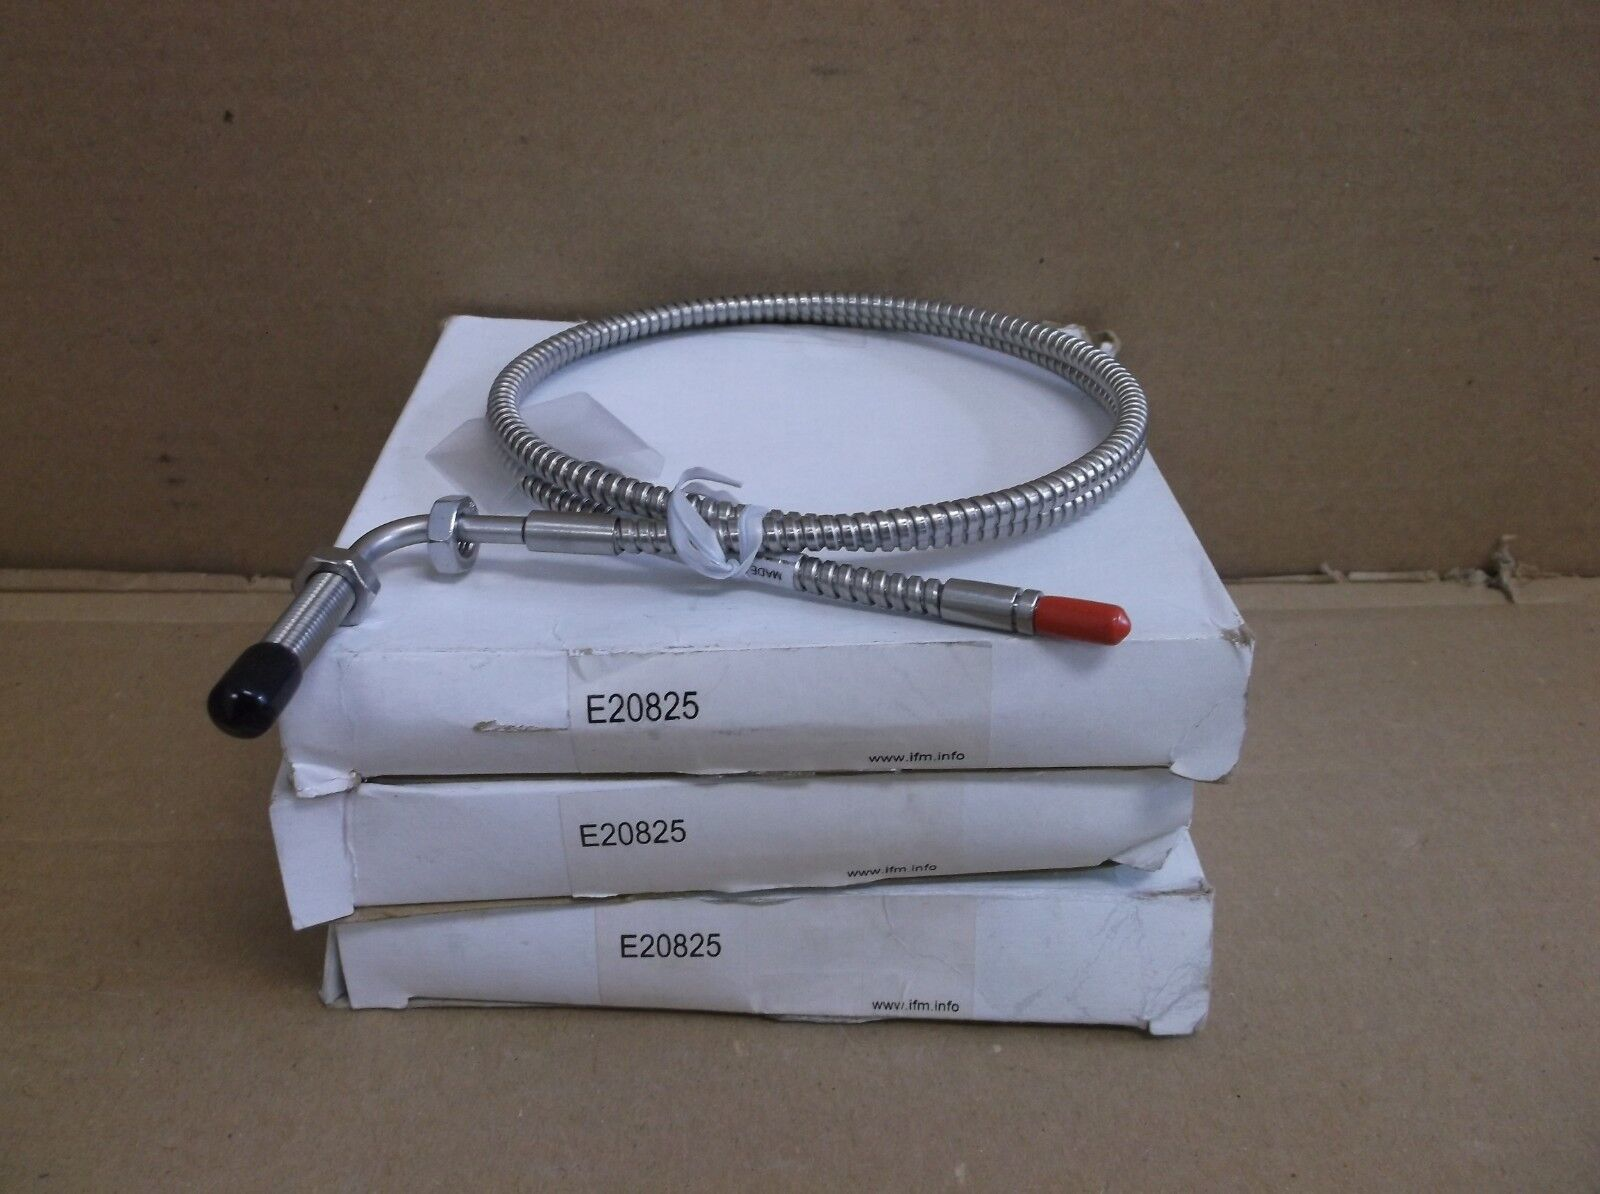 E20825 IFM Efector NEW In Box Photoelectric Switch Sensor Fiber Optic Cable